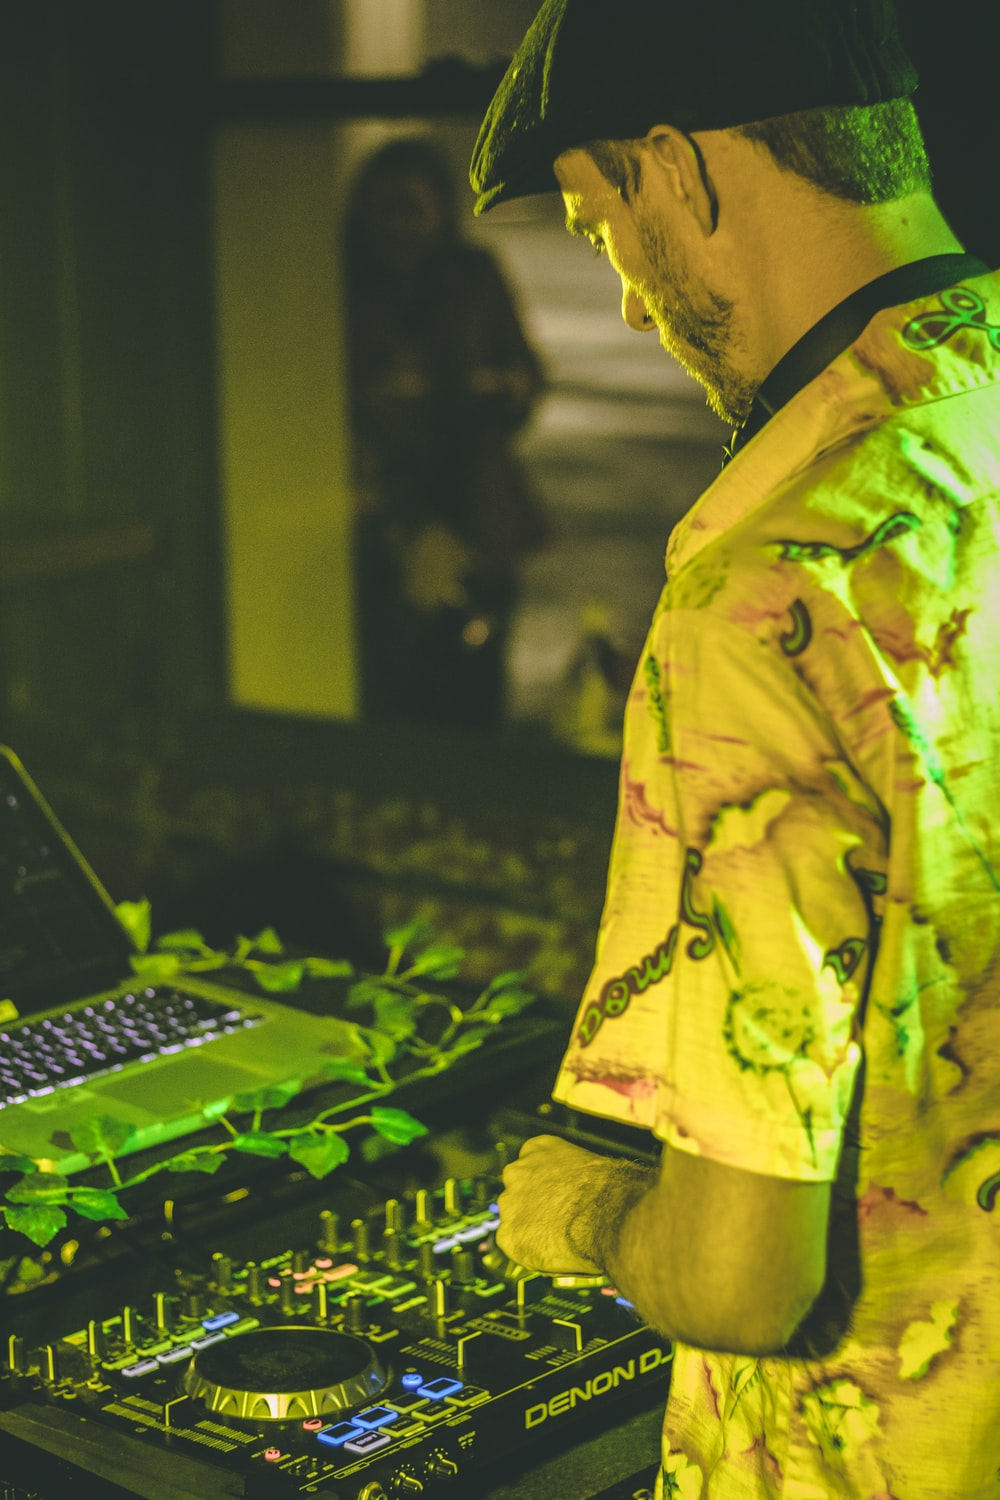 man in yellow and green floral button up shirt using computer